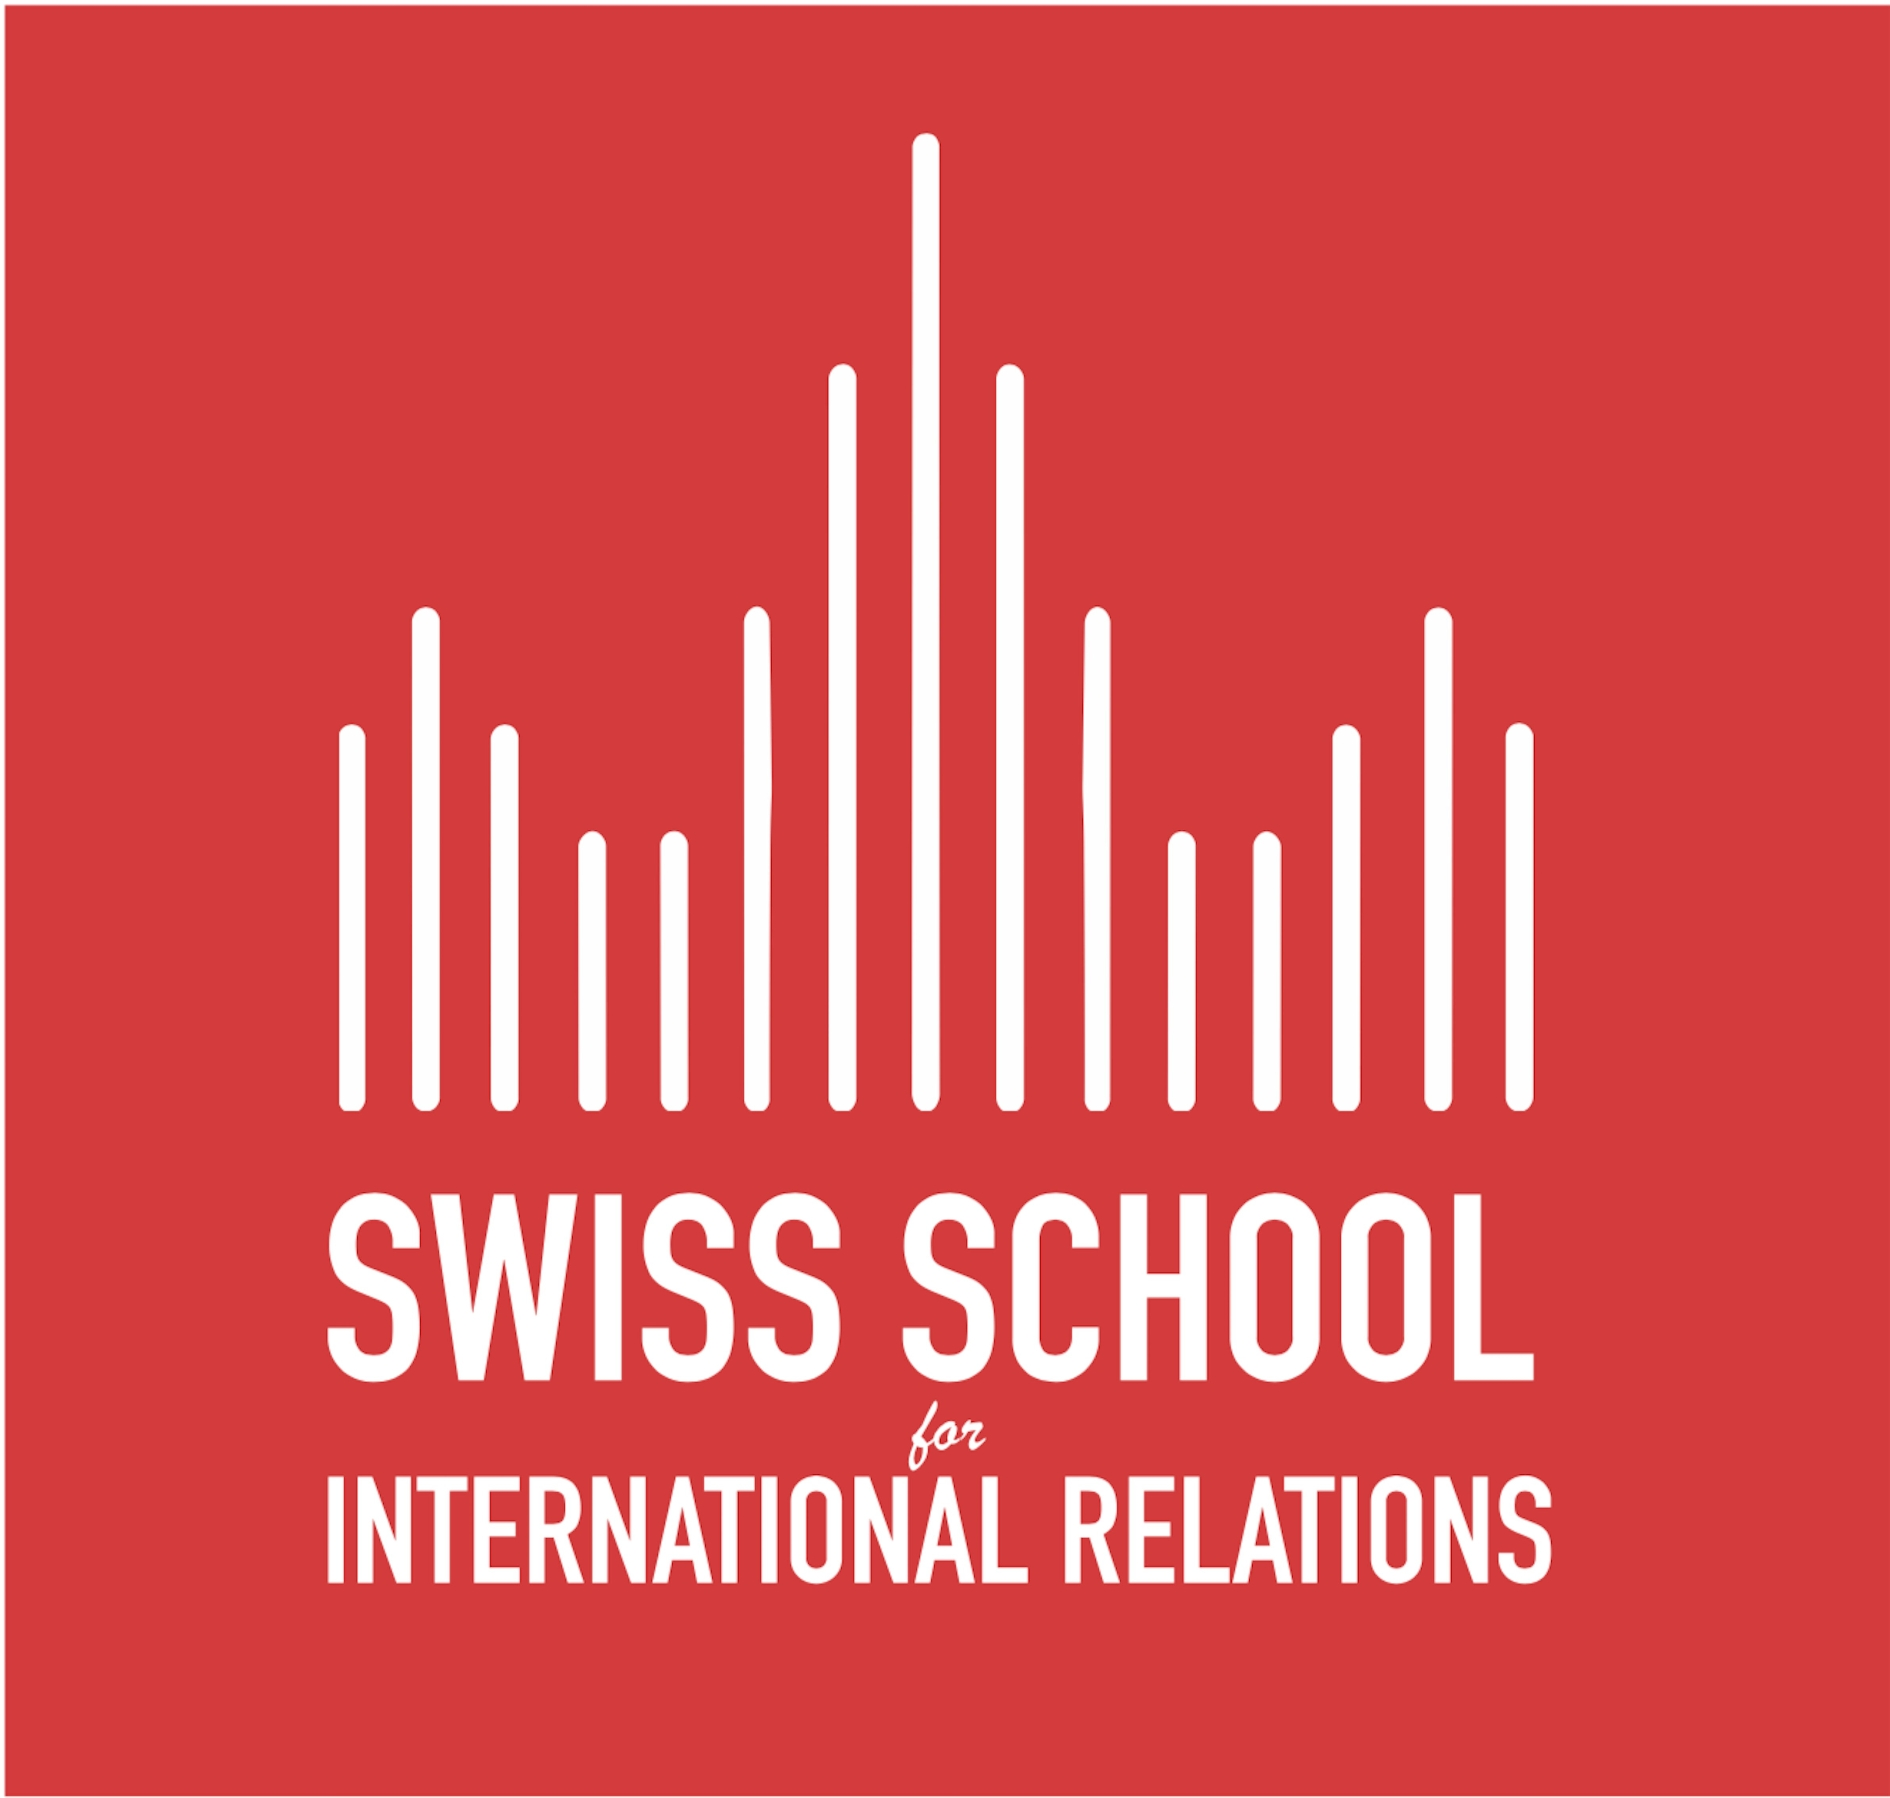 SWISS SCHOOL for INTERNATIONAL RELATIONS